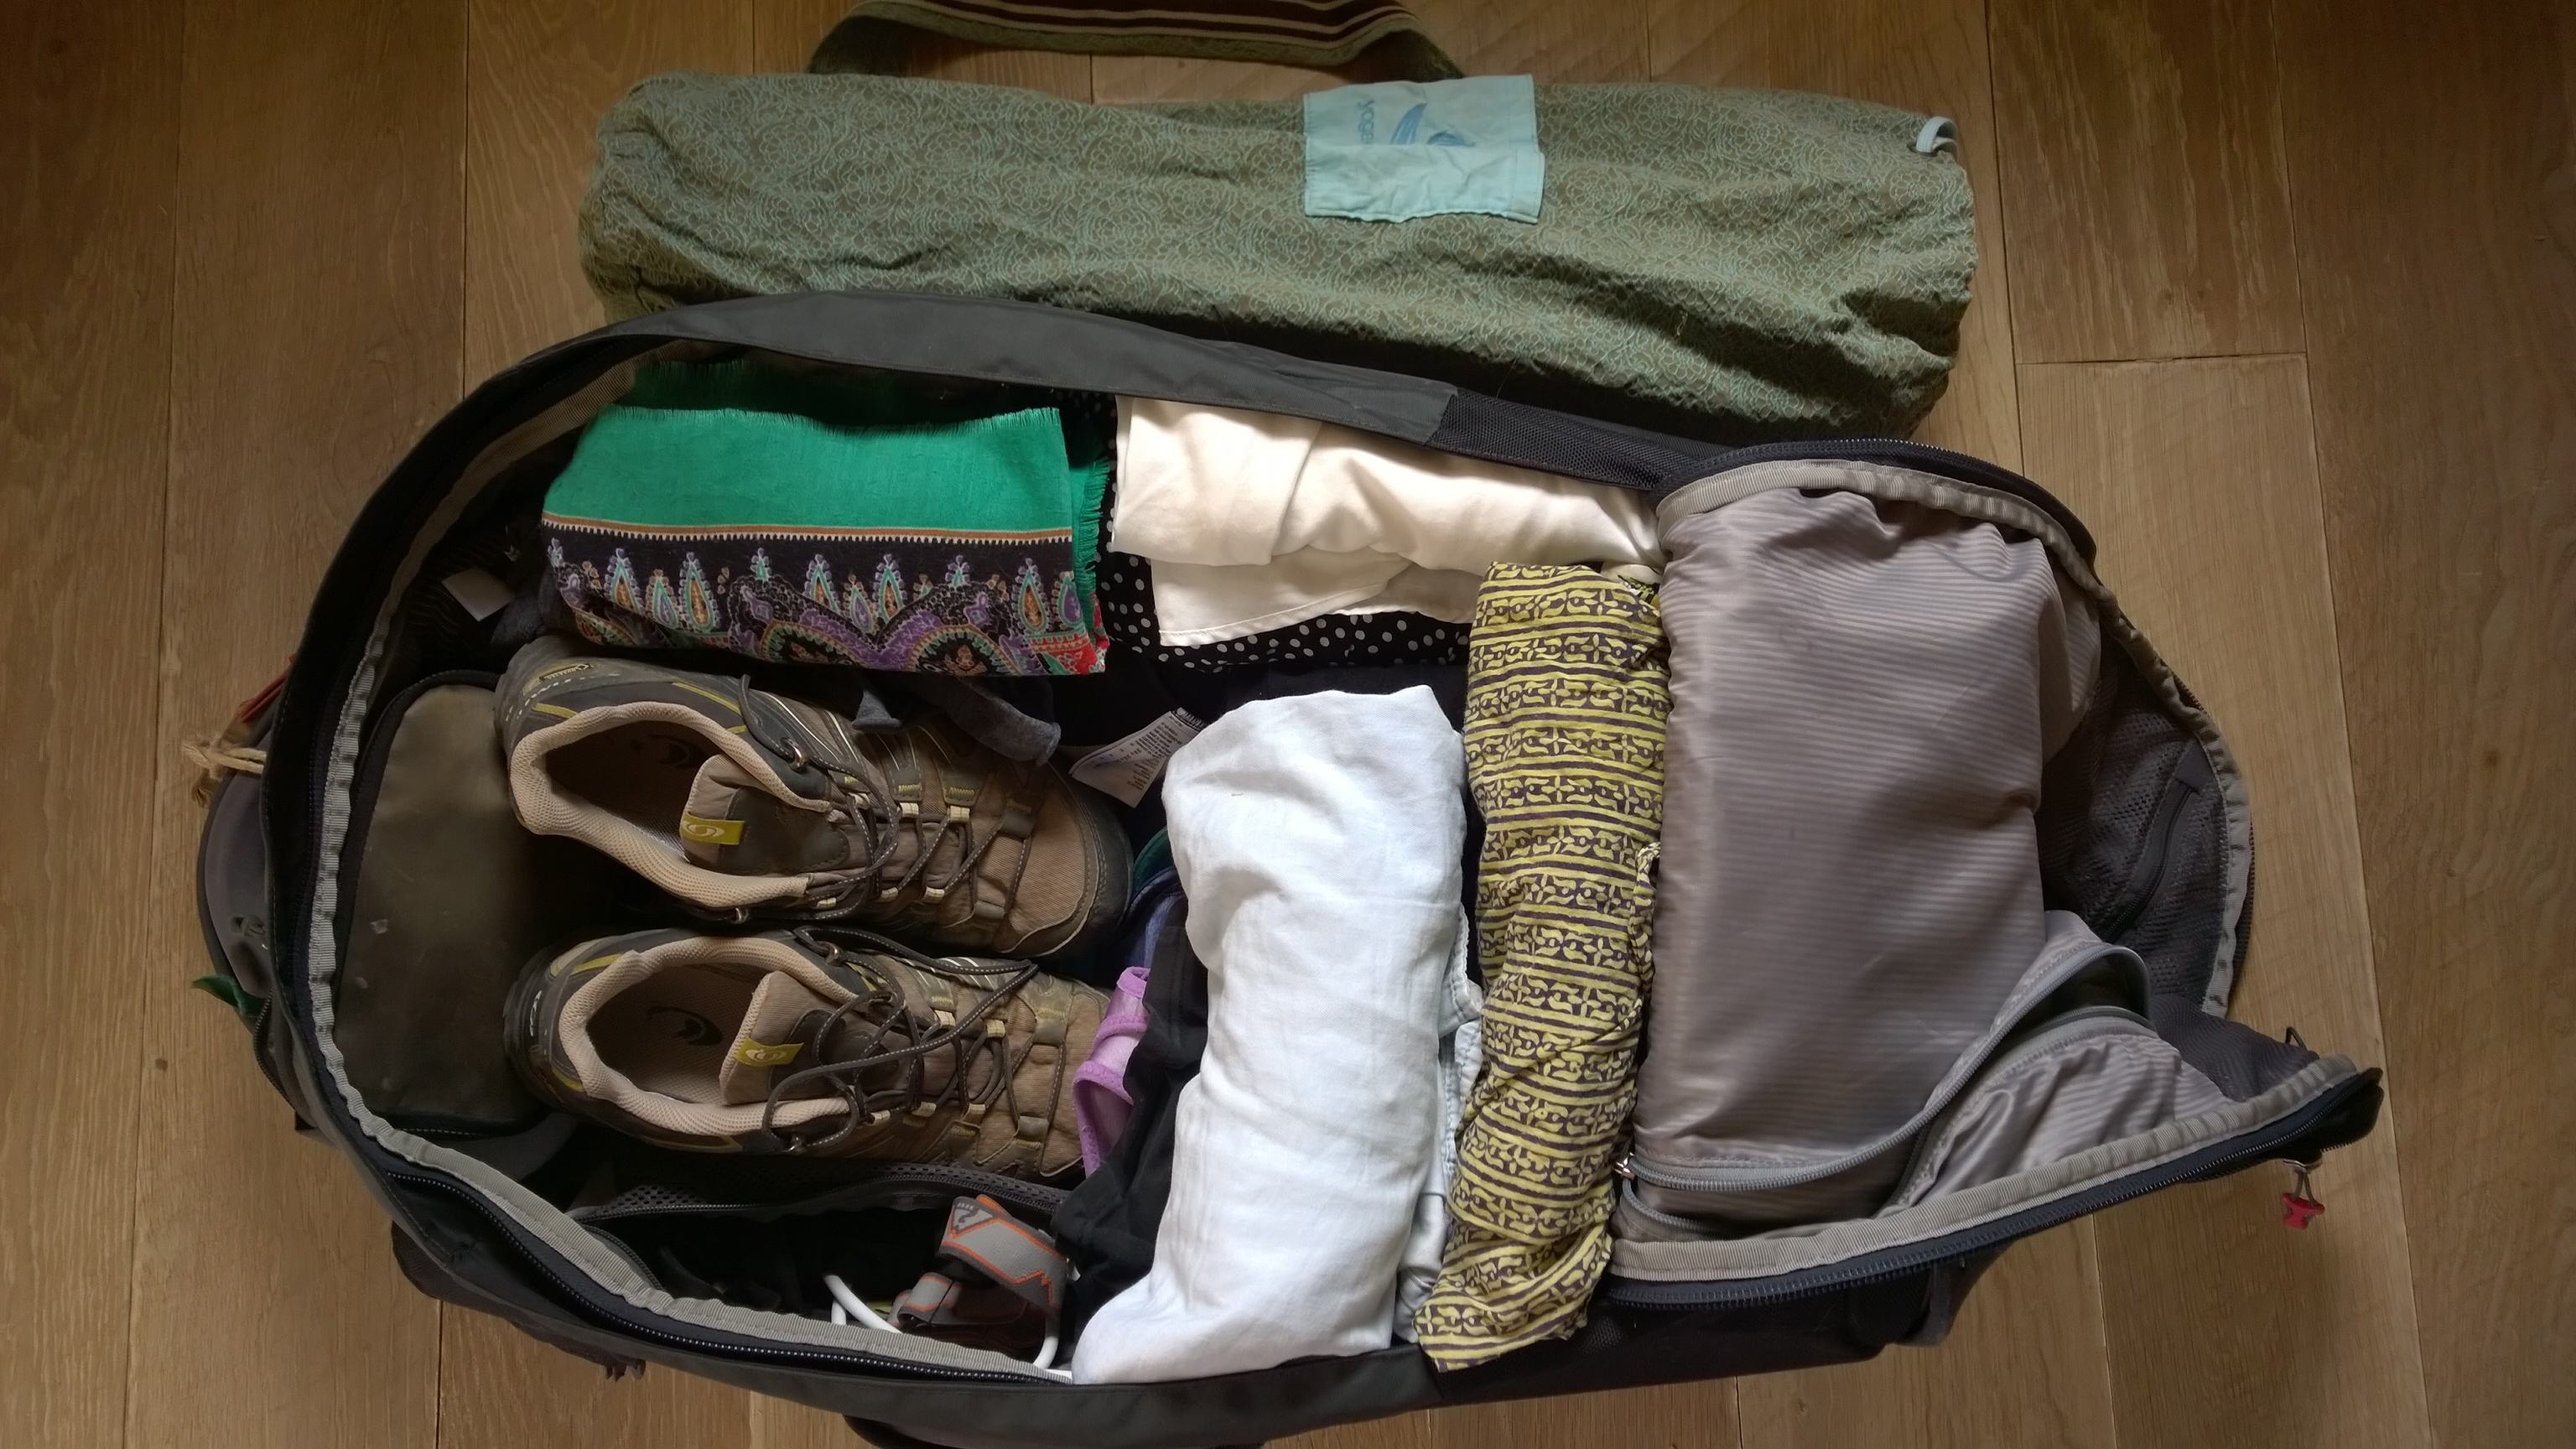 Packing bag